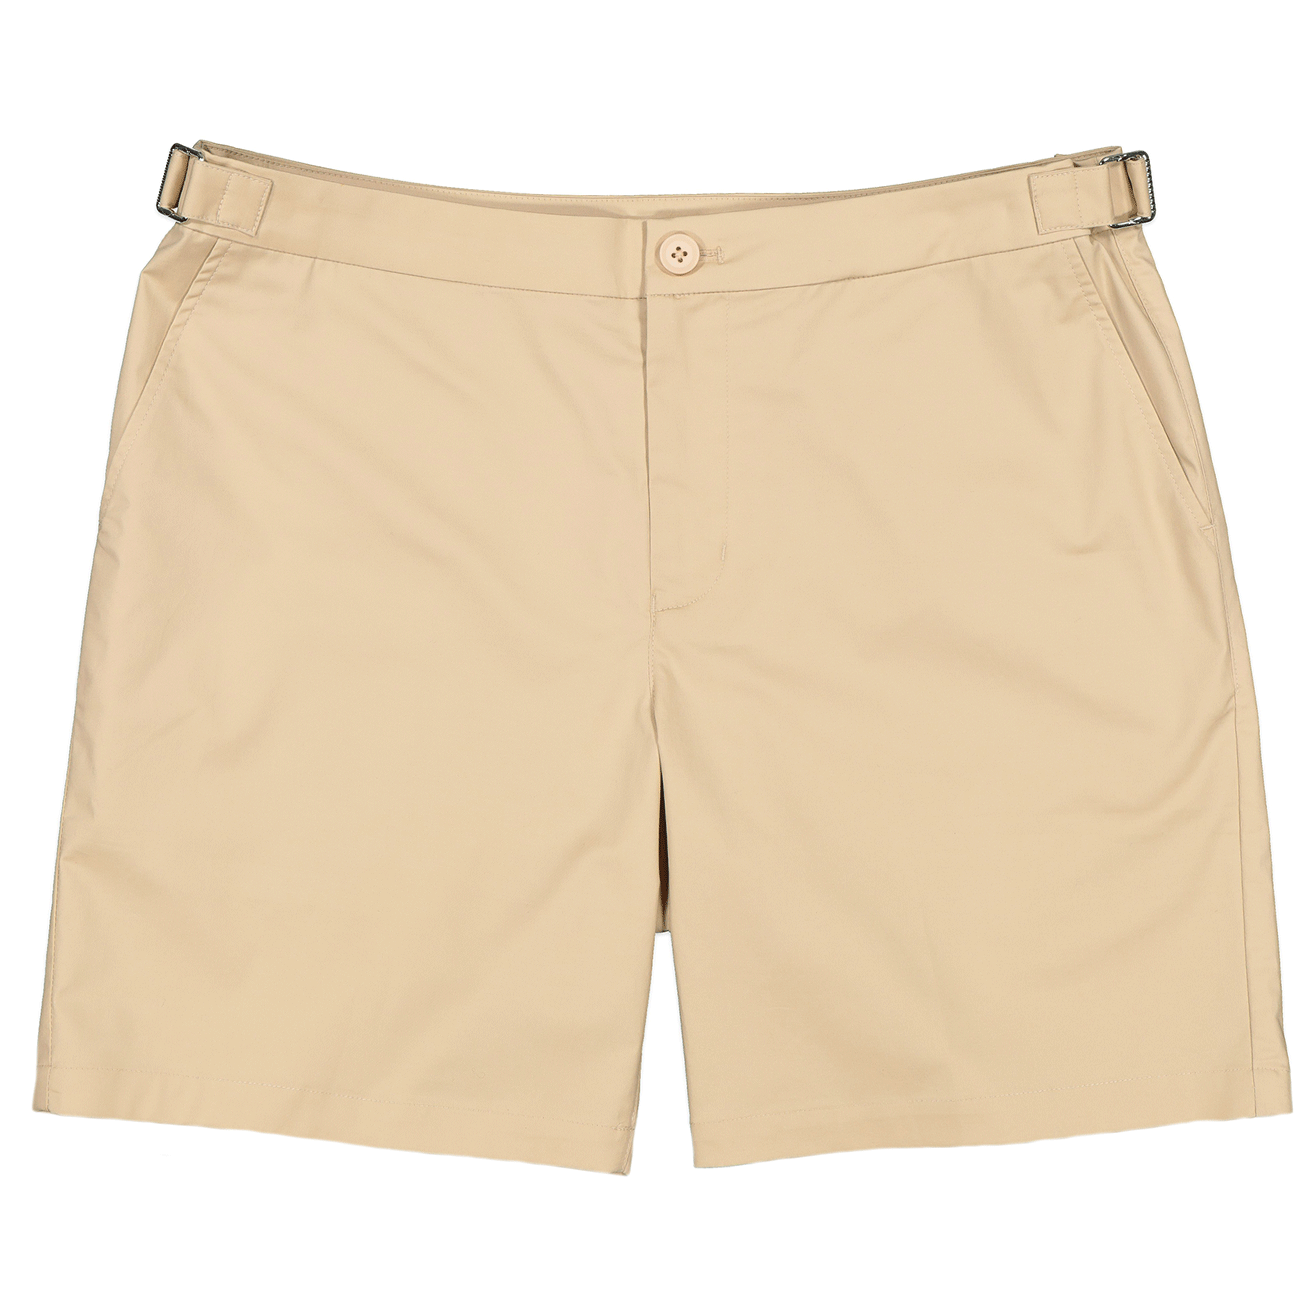 Essential Short - Tan